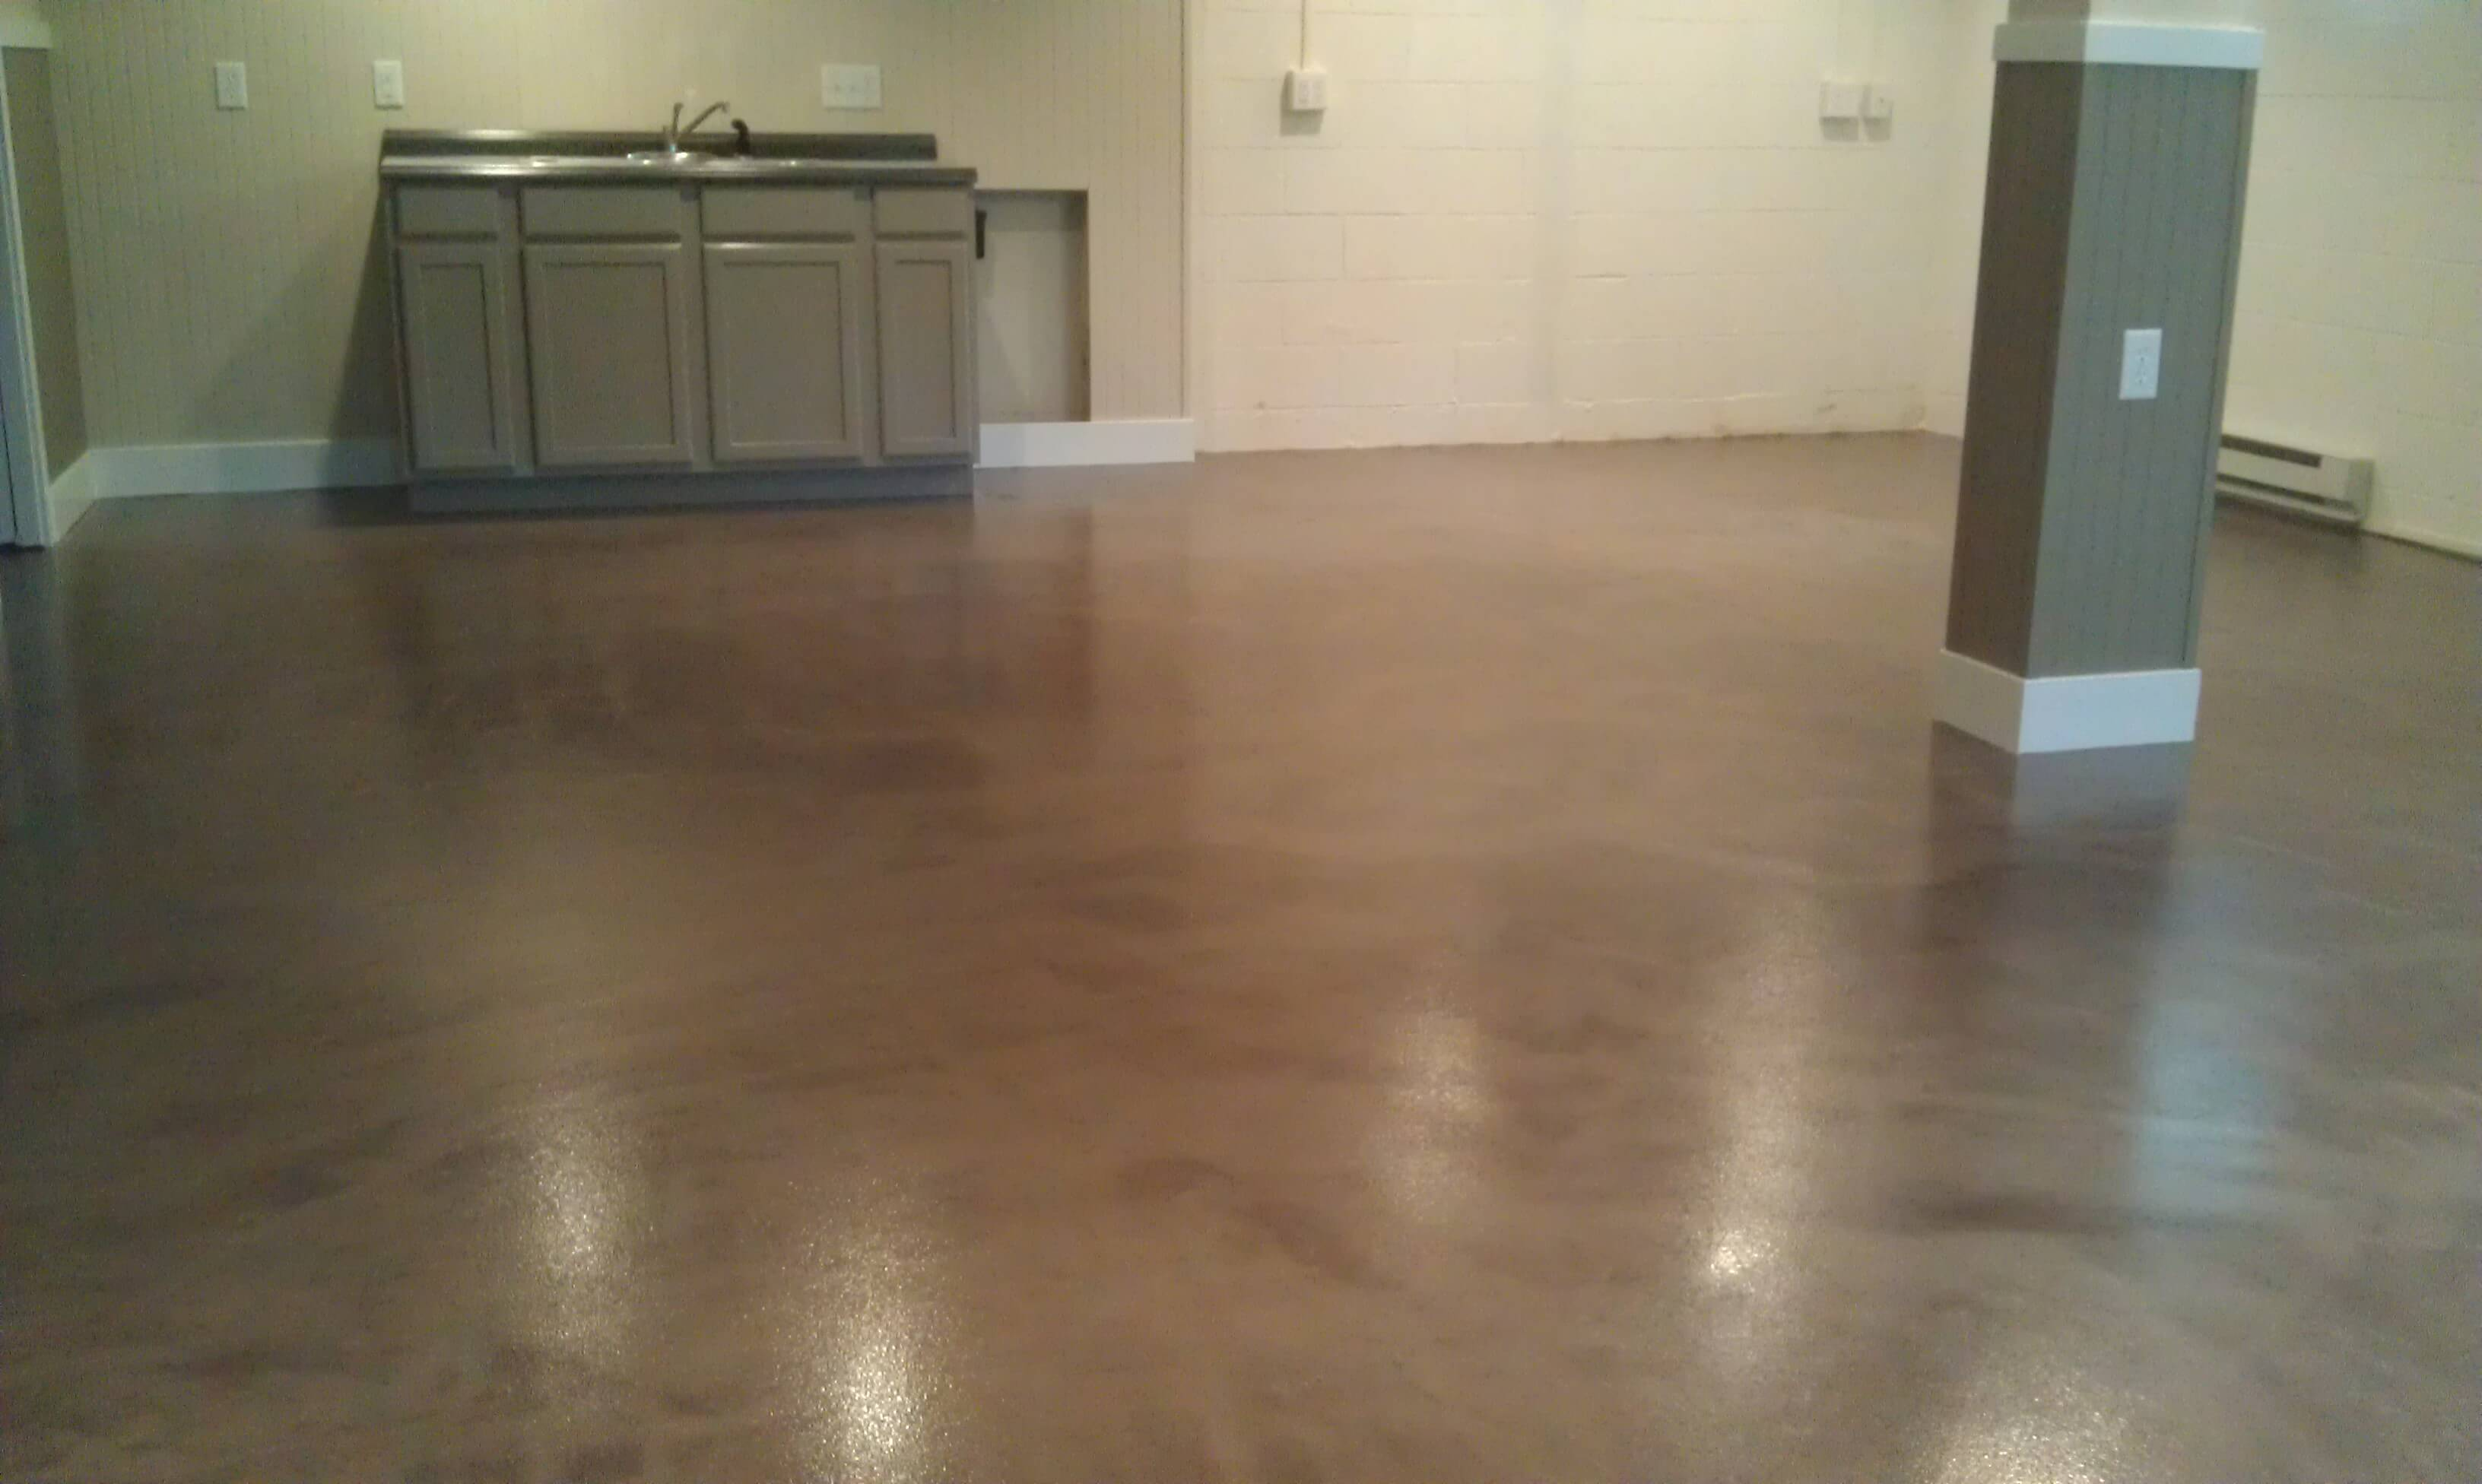 flooring in top contractors design installers columbus ohio floor for epoxy floors your home inside garage installation homes